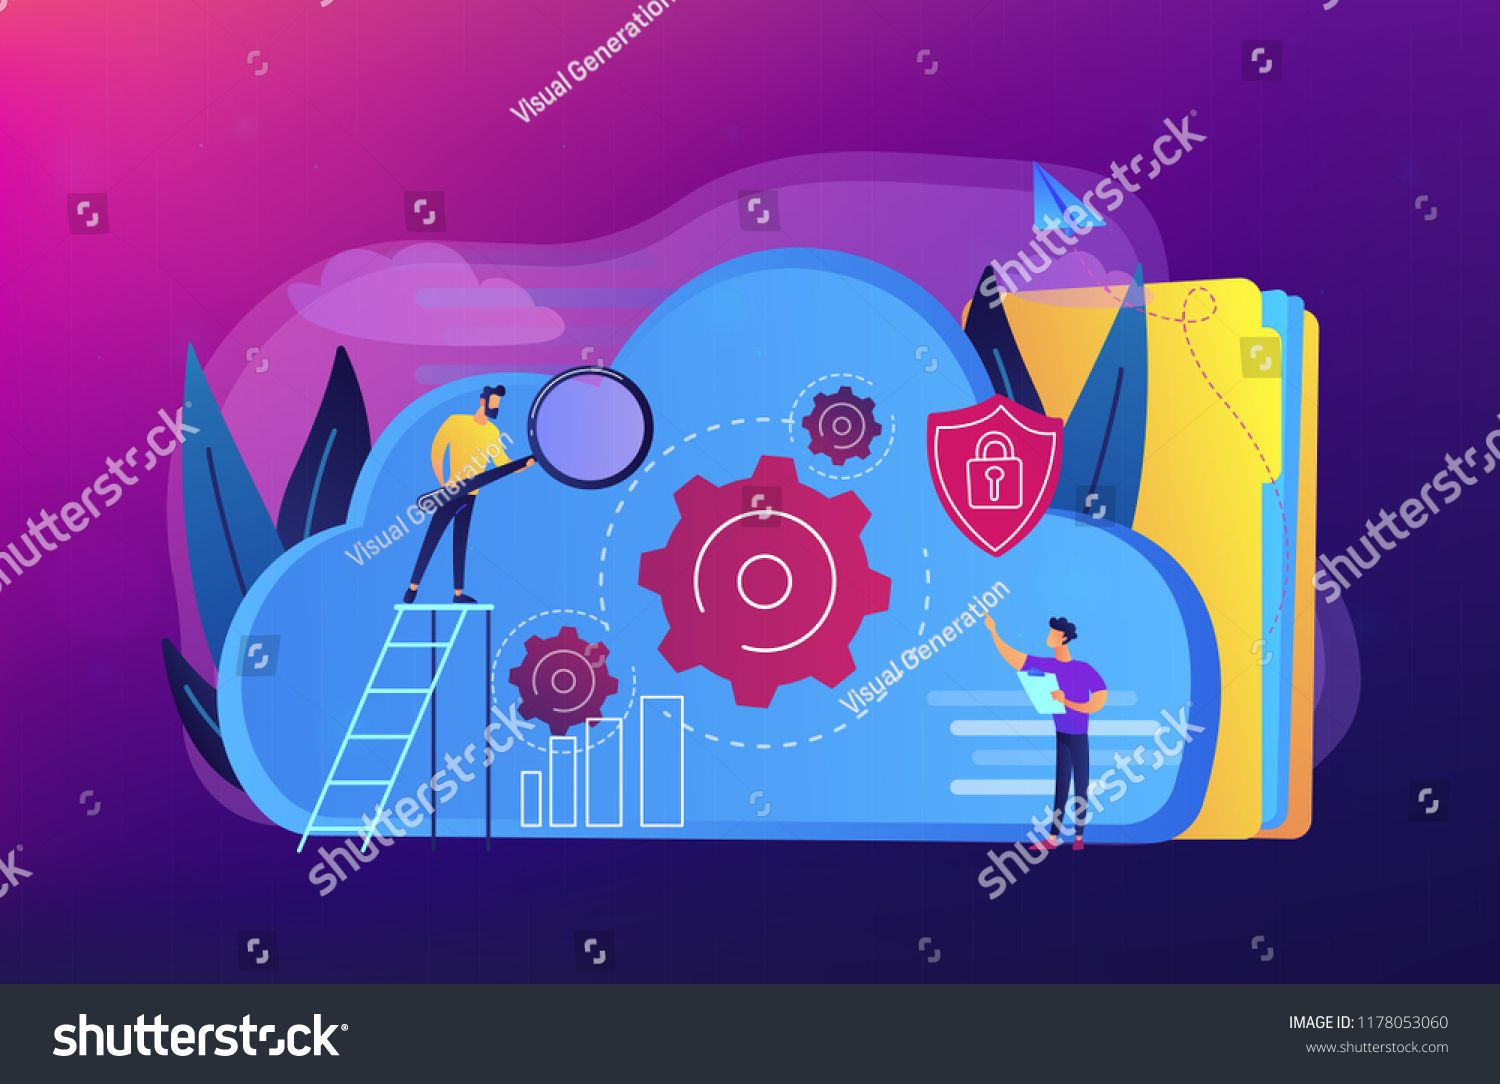 Two Developers Looking At The Gears On The Cloud Digital Data Storage Database Securiry Data Protection Cloud Technology Co Vector Violet Background Clouds